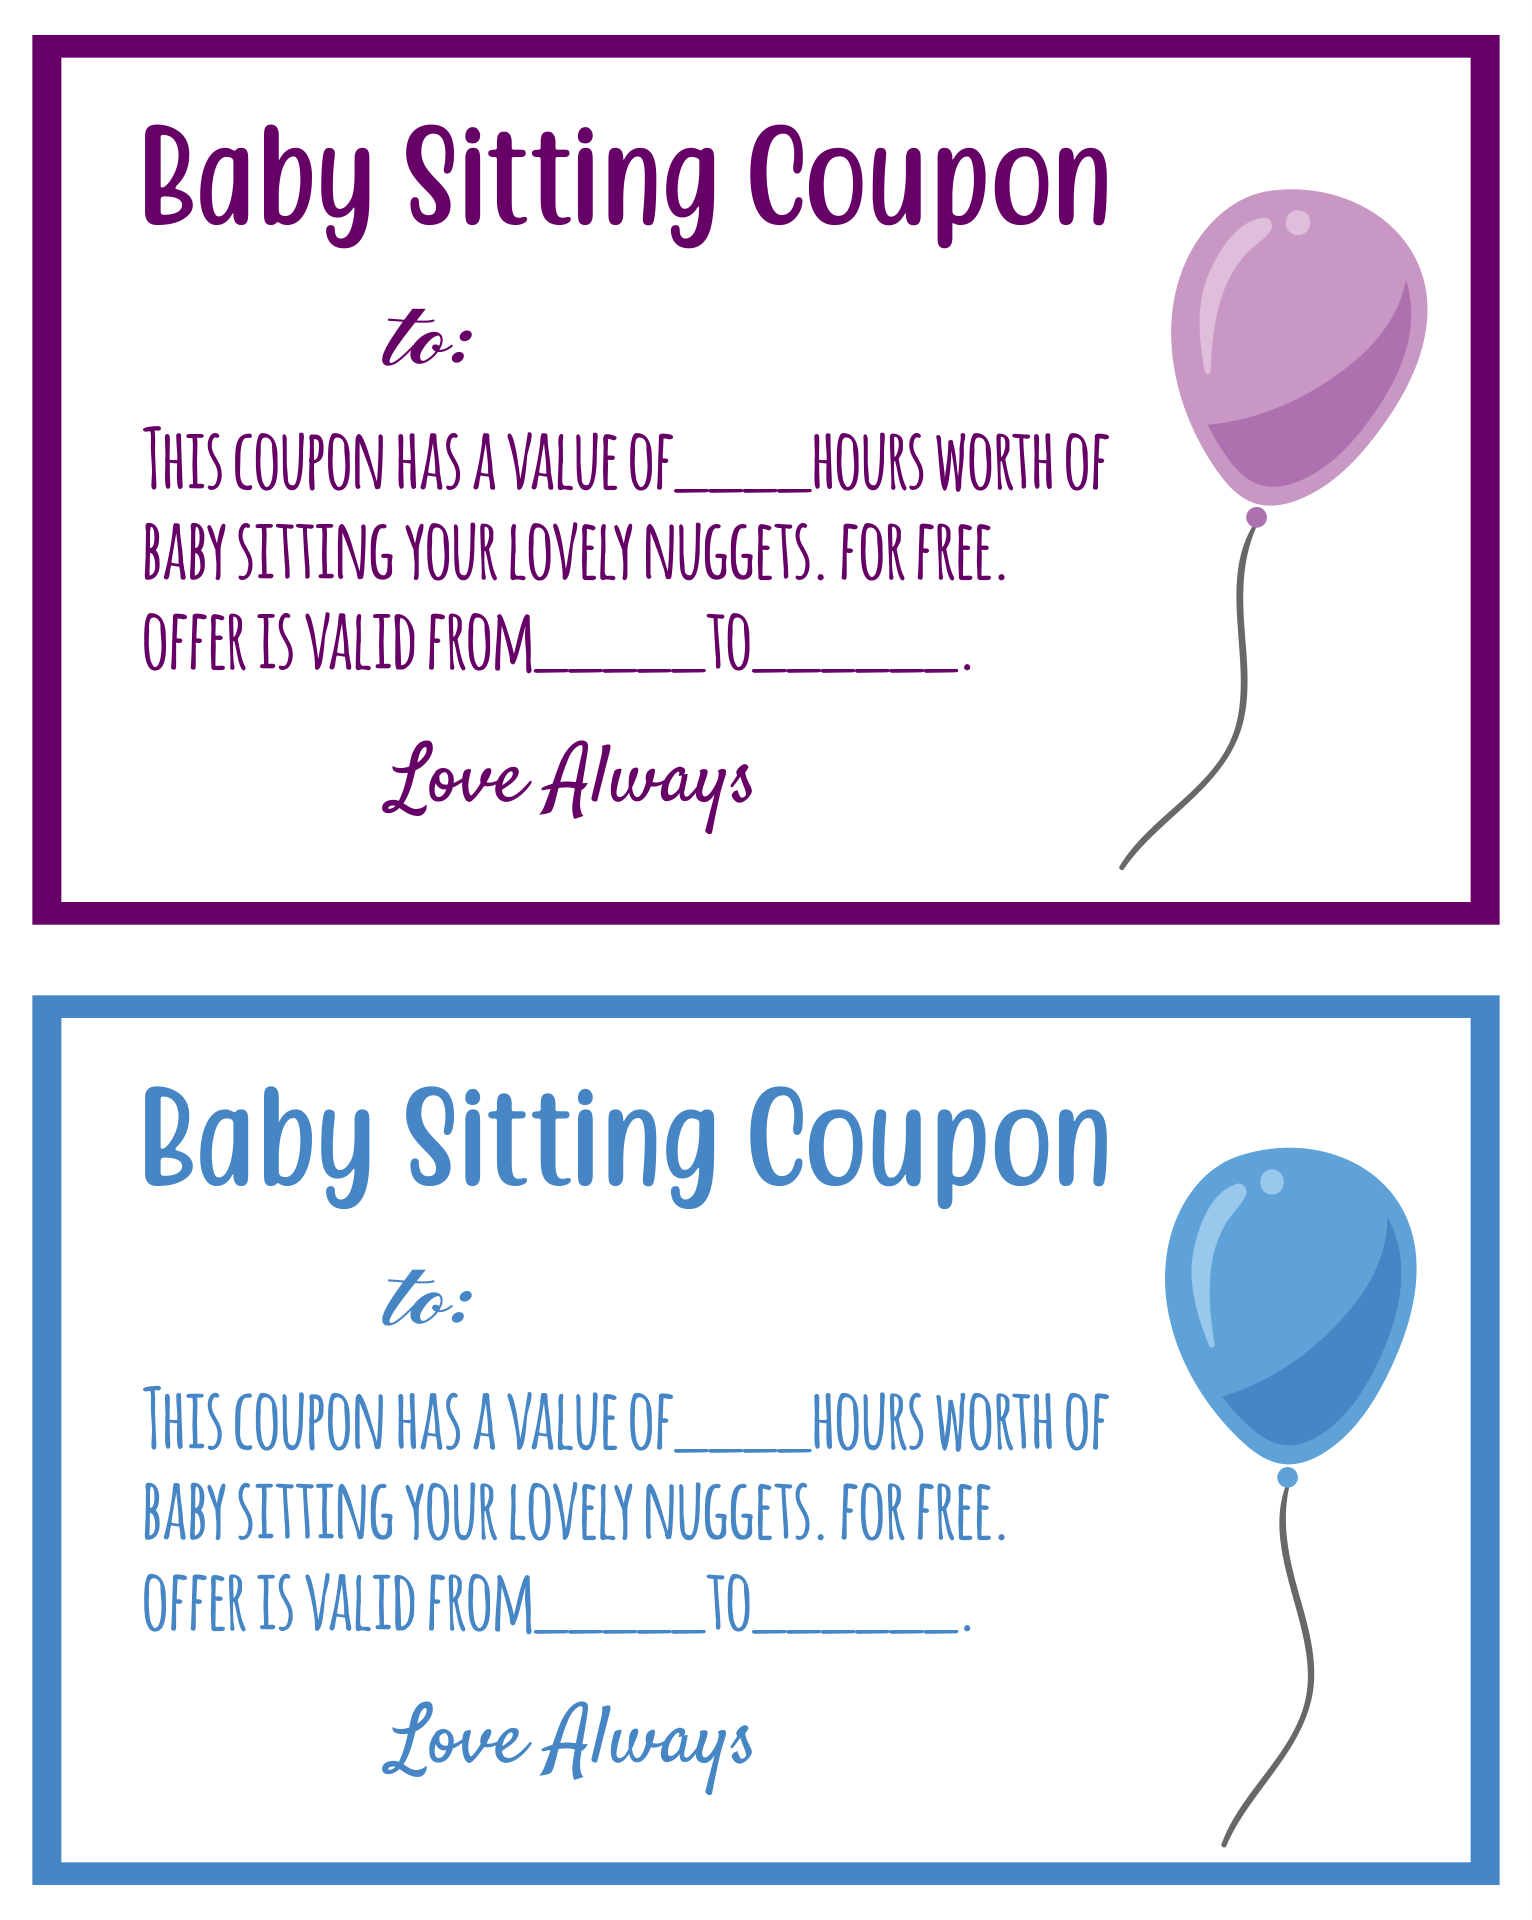 Free Babysitting Coupon Clip Art